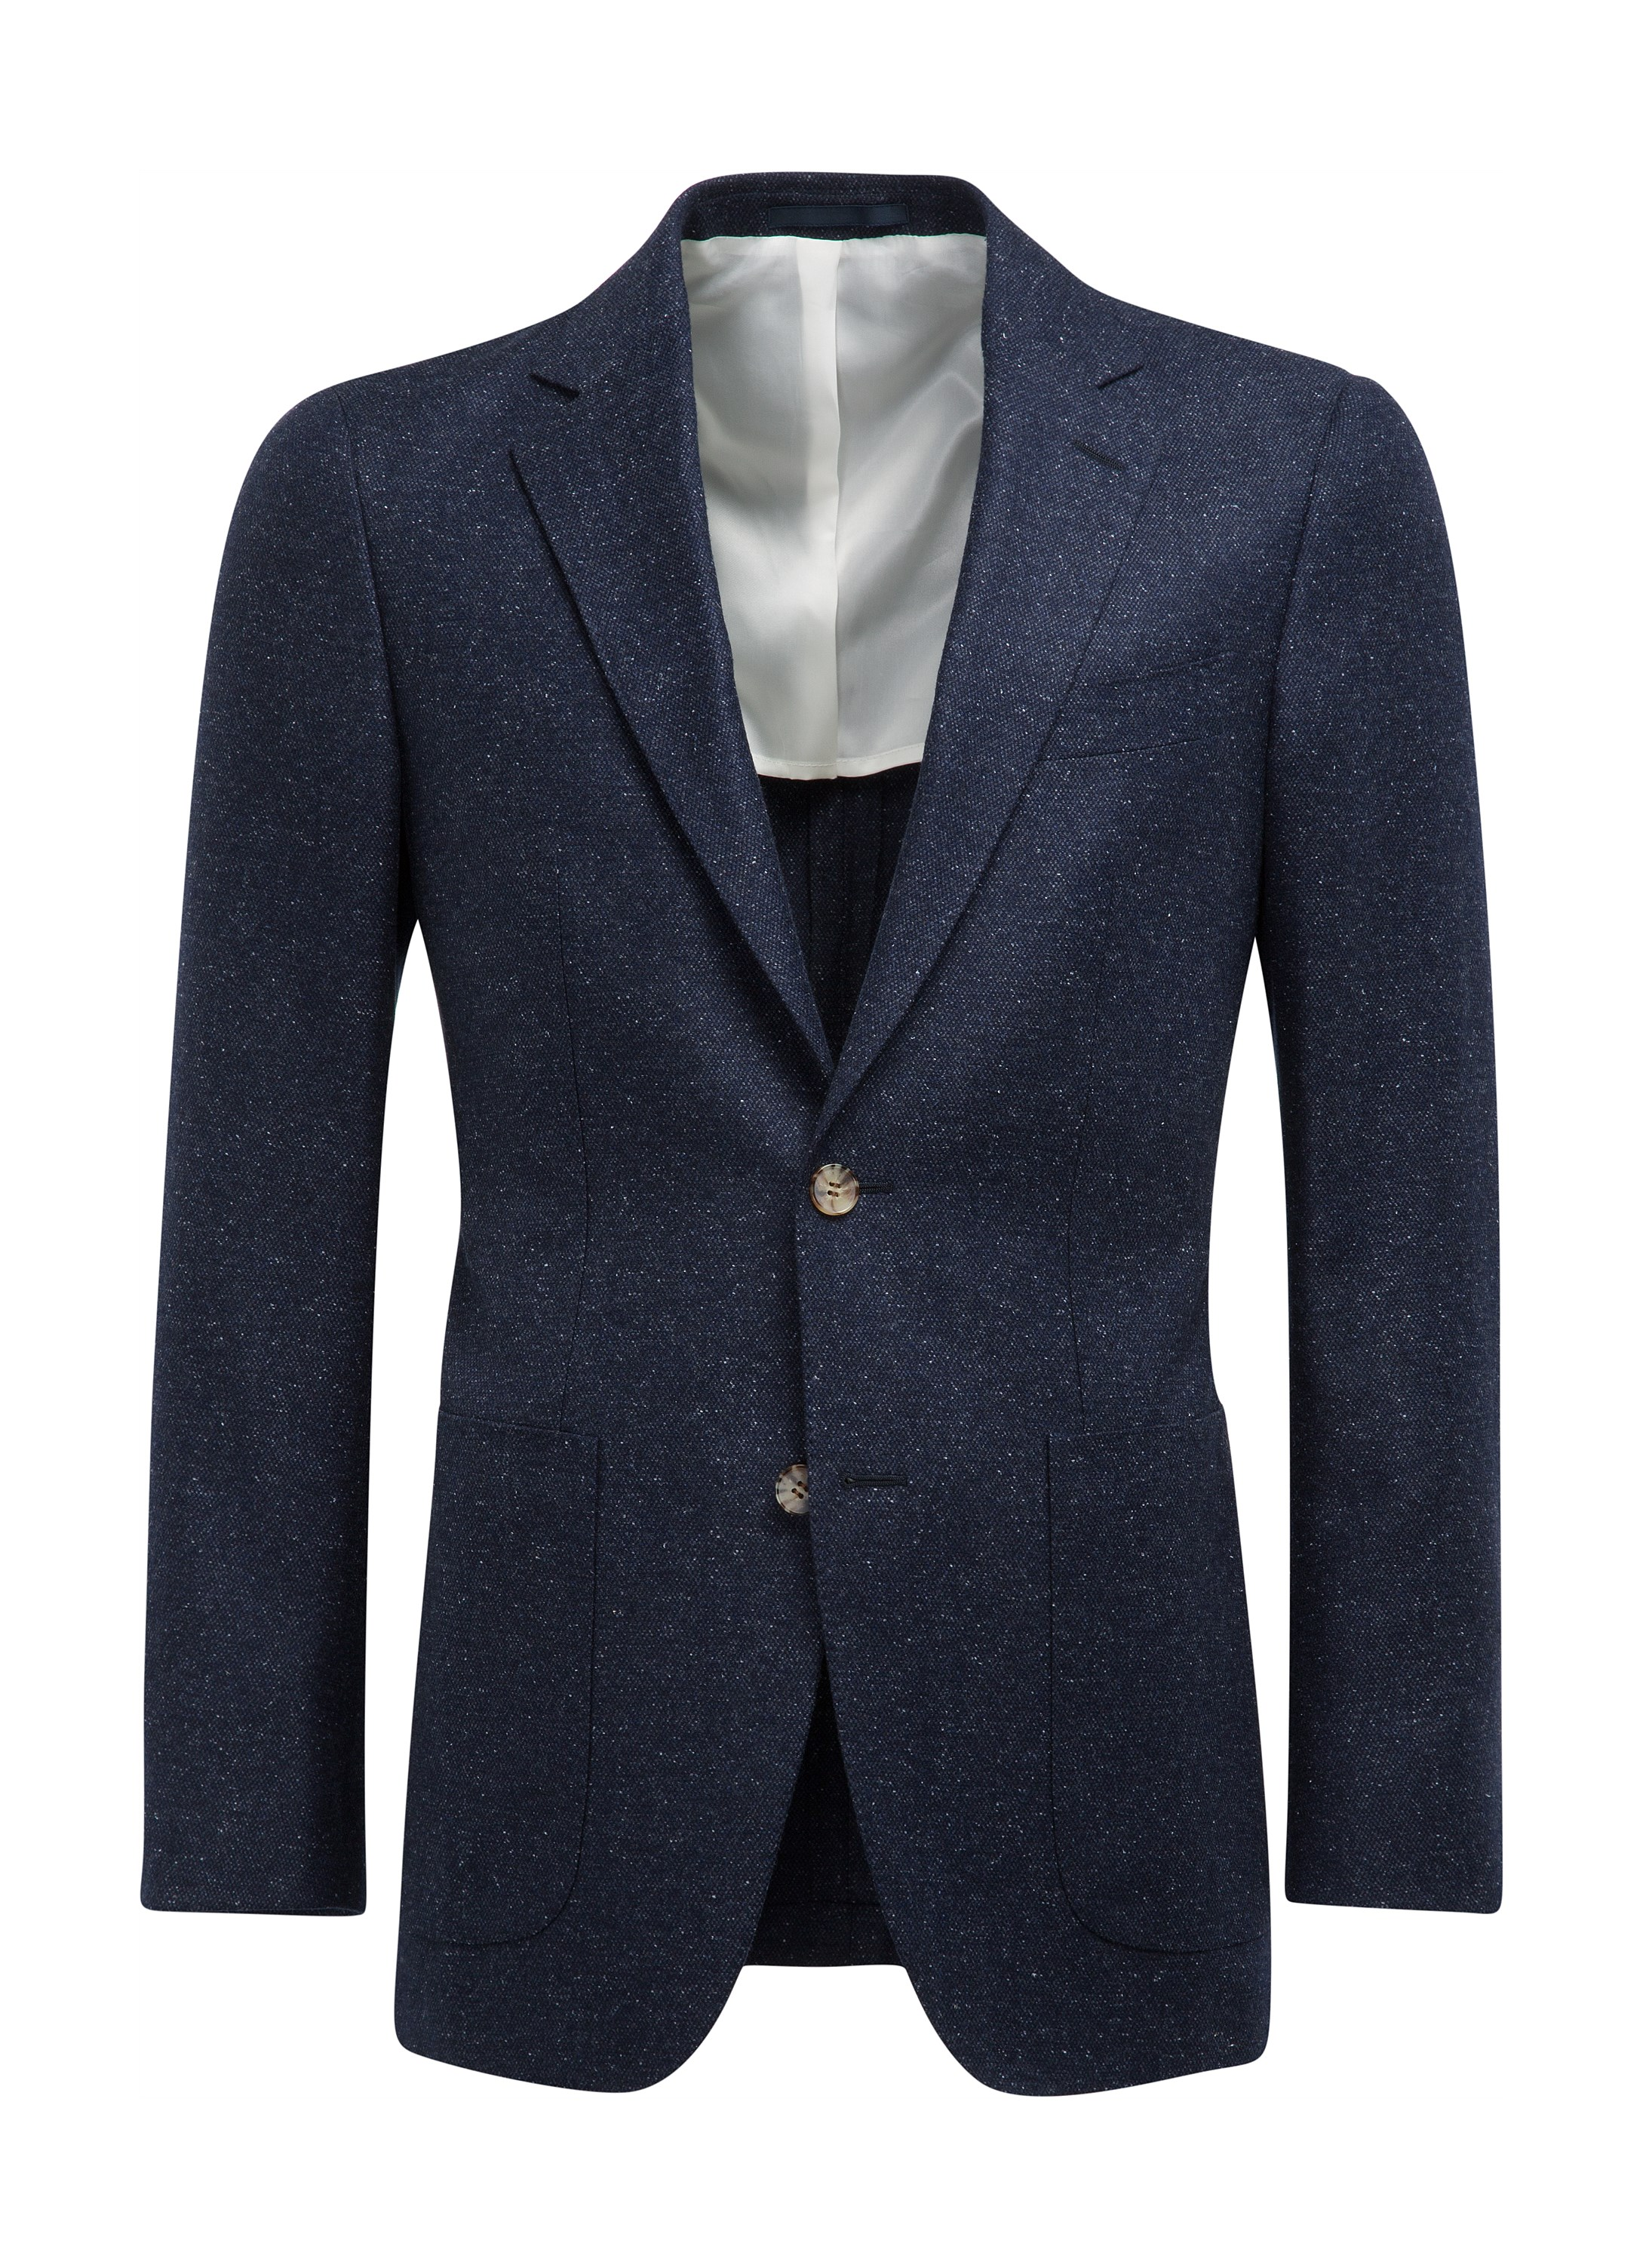 http://statics.suitsupply.com/images/products/Jackets/zoom/Jackets_Blue_Plain_Havana_C927_Suitsupply_Online_Store_5.jpg